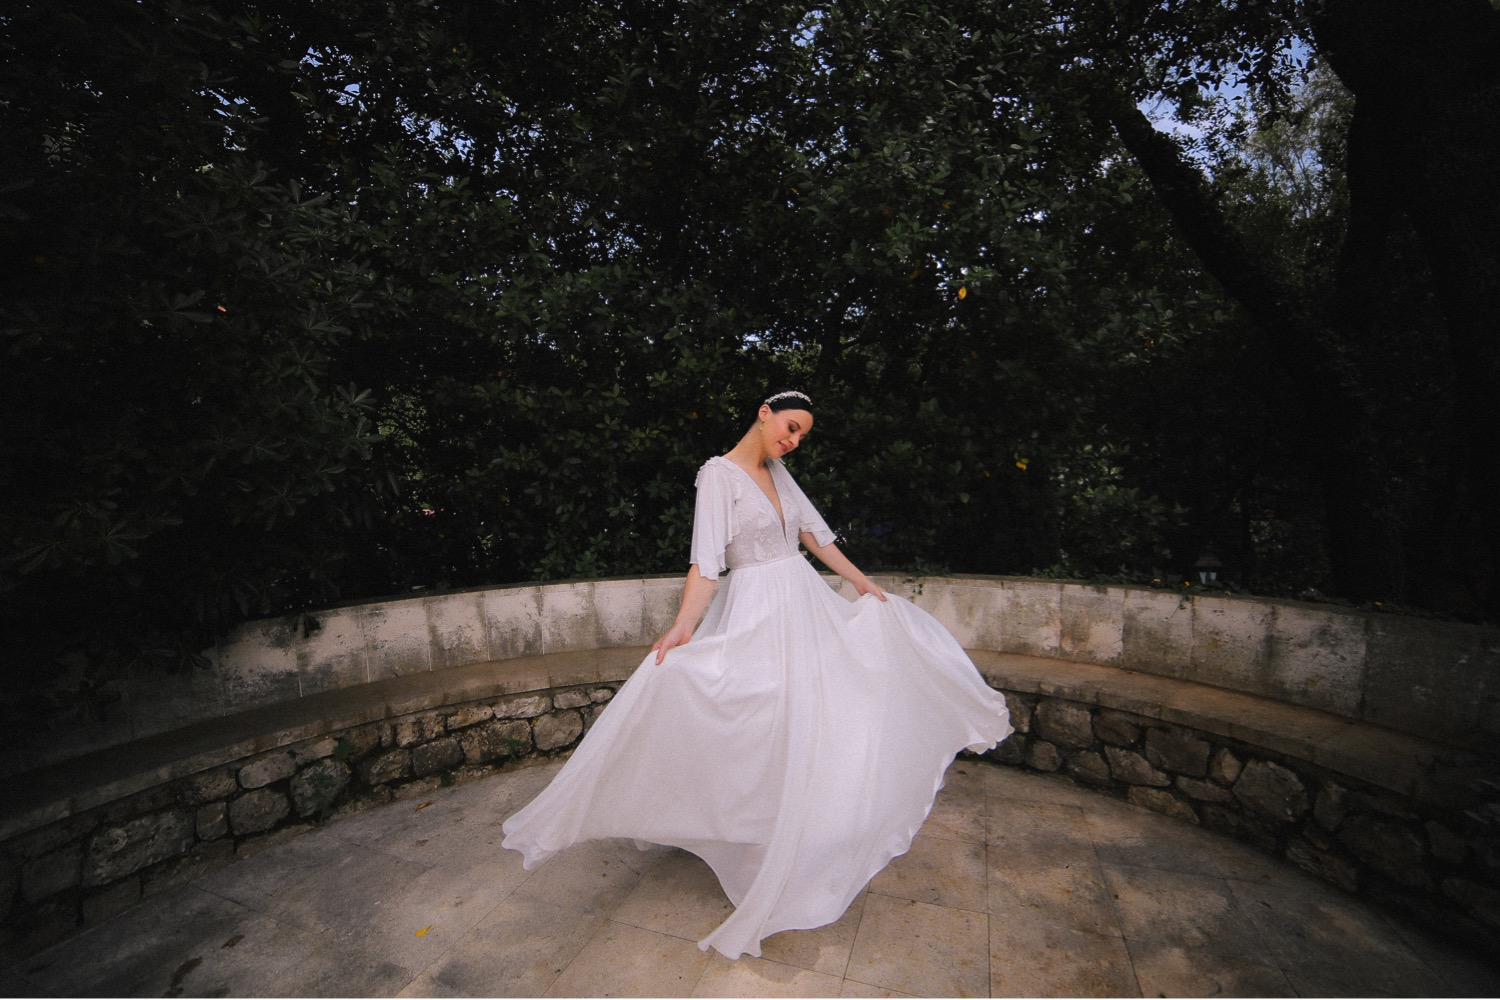 Best moments of 2019 love and ventures 30 | Croatia Elopement Photographer and Videographer